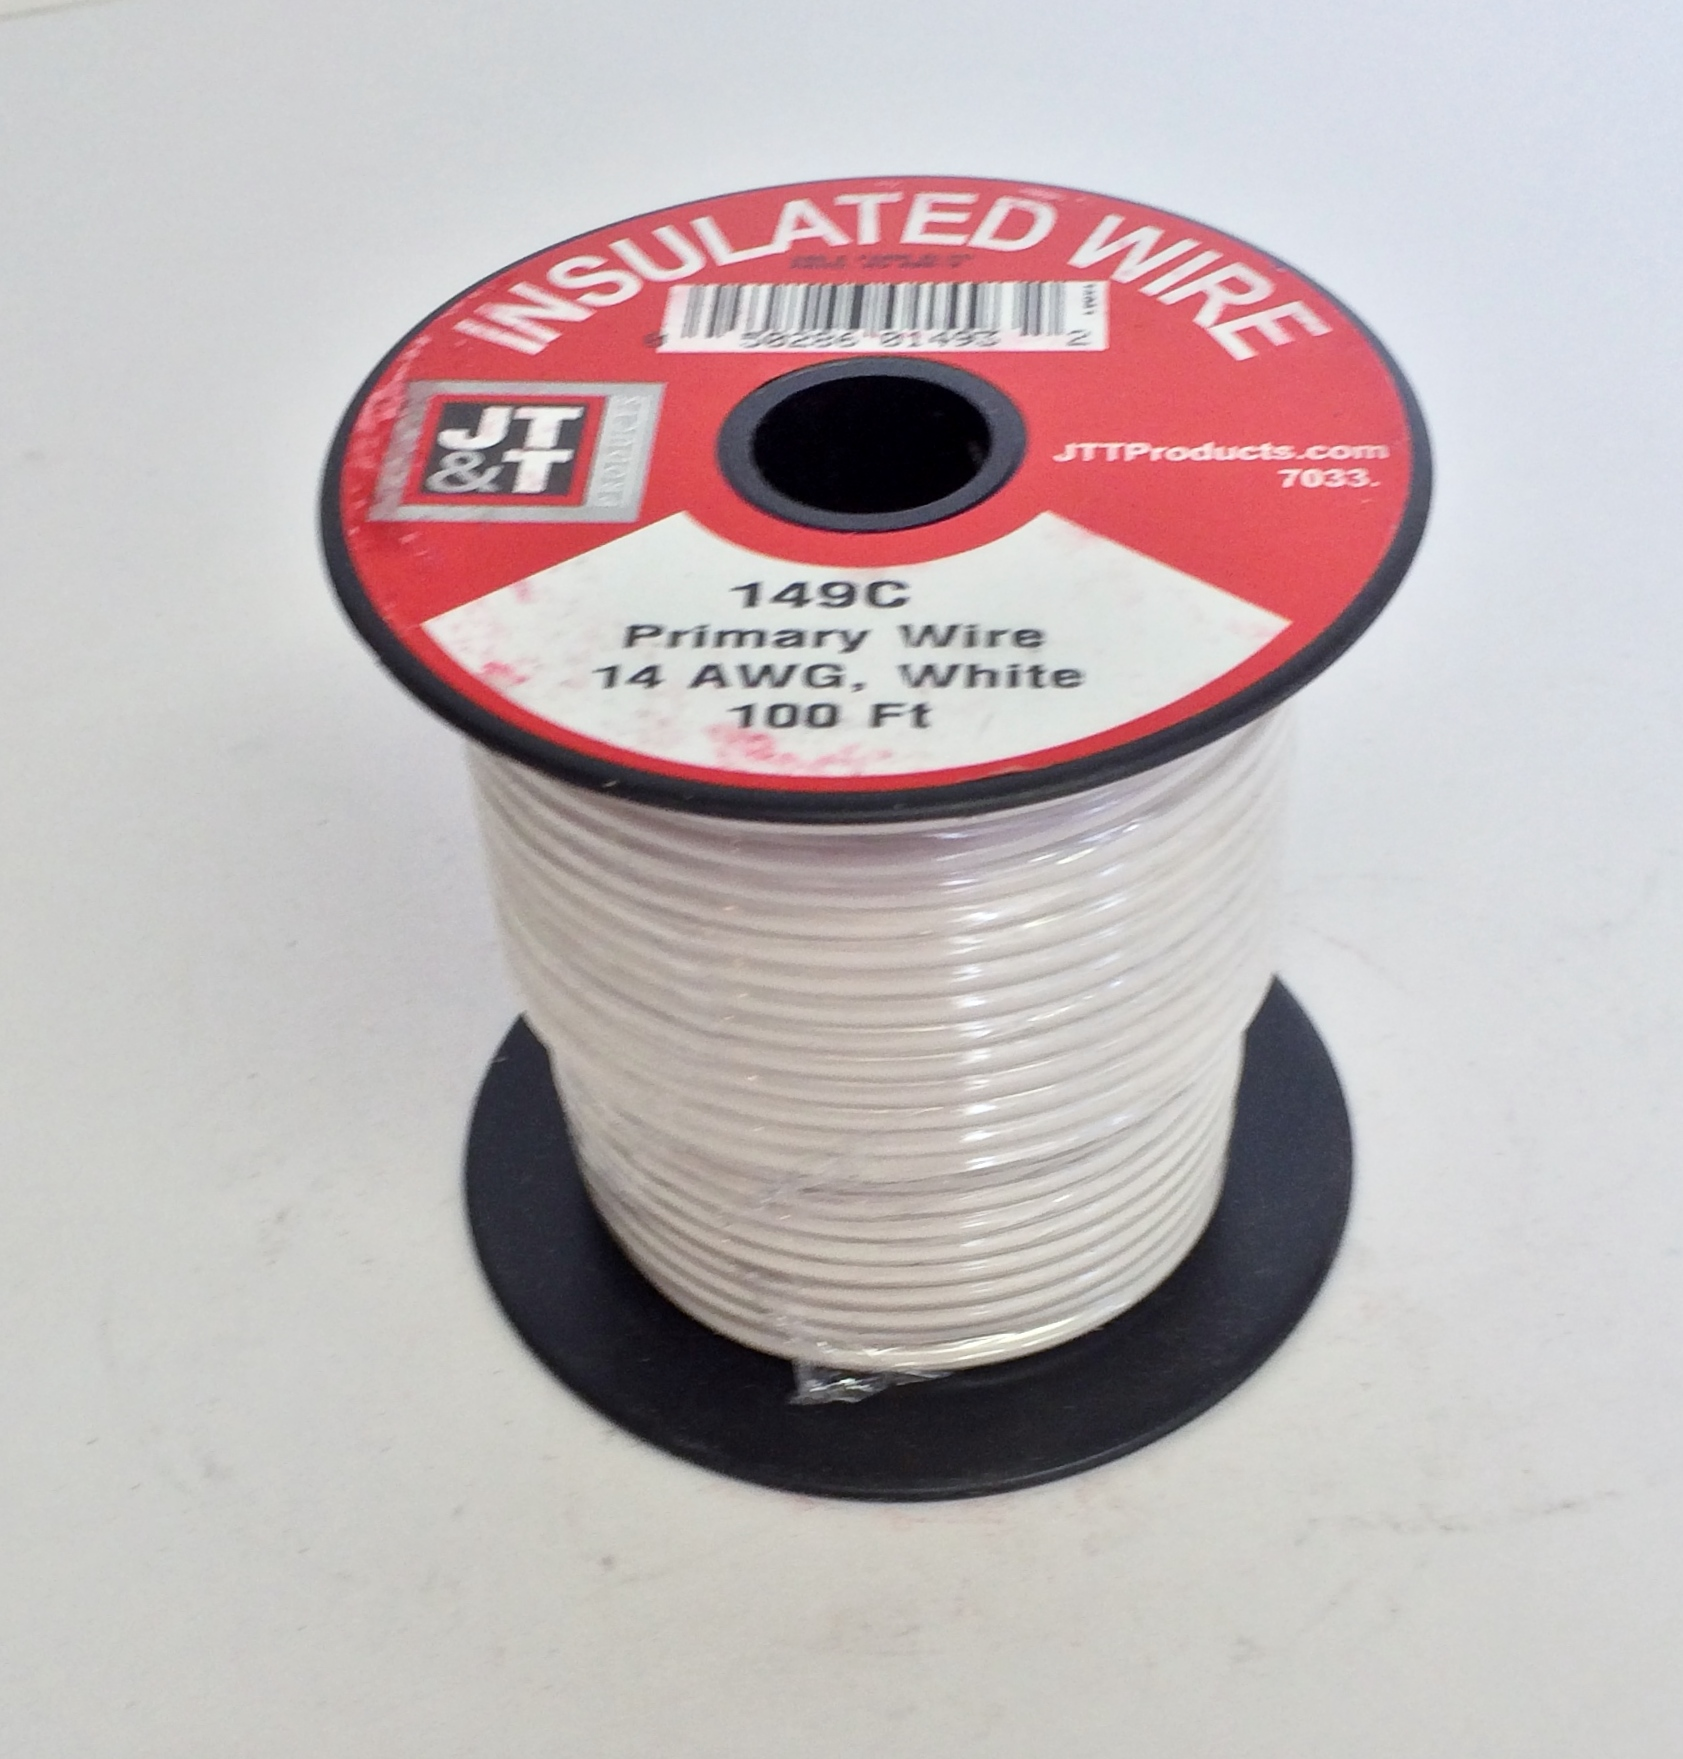 Wire 14 Gauge, White Primary Wire, 149C - Meadows Auto Supply